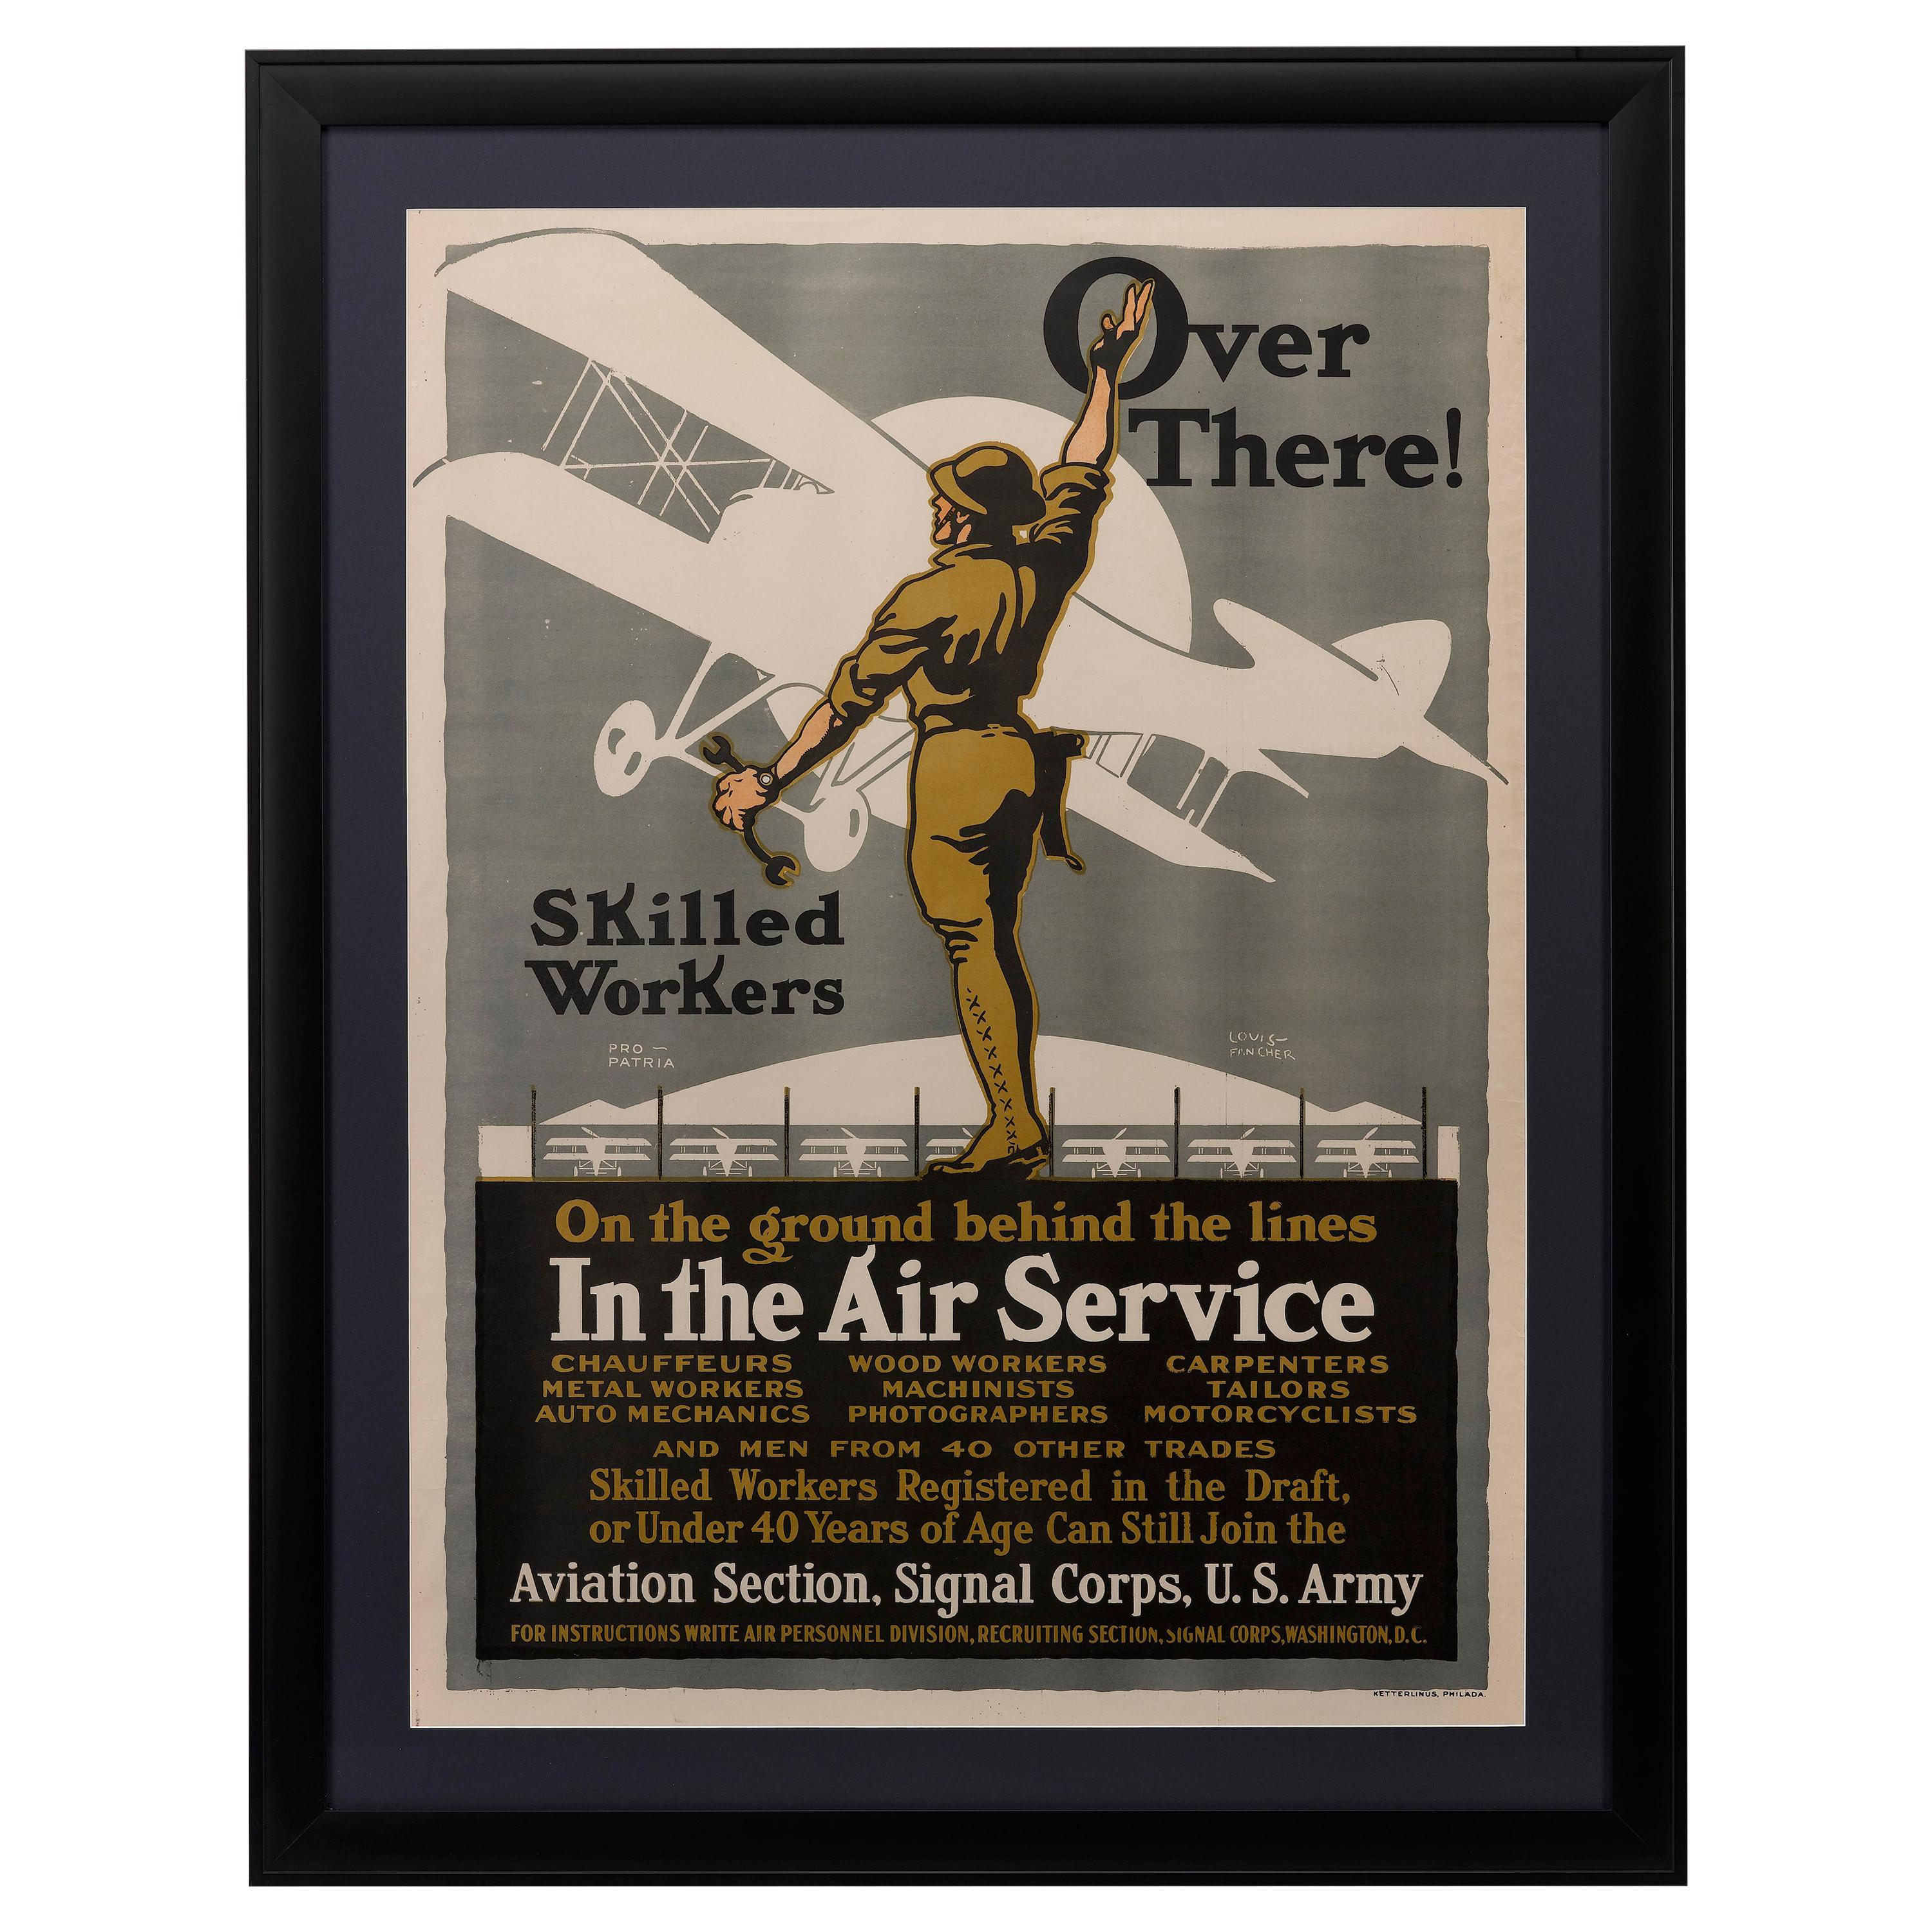 """Army Air Service """"Over There!"""" WW I Recruitment Poster by Louis Fancher, 1918"""